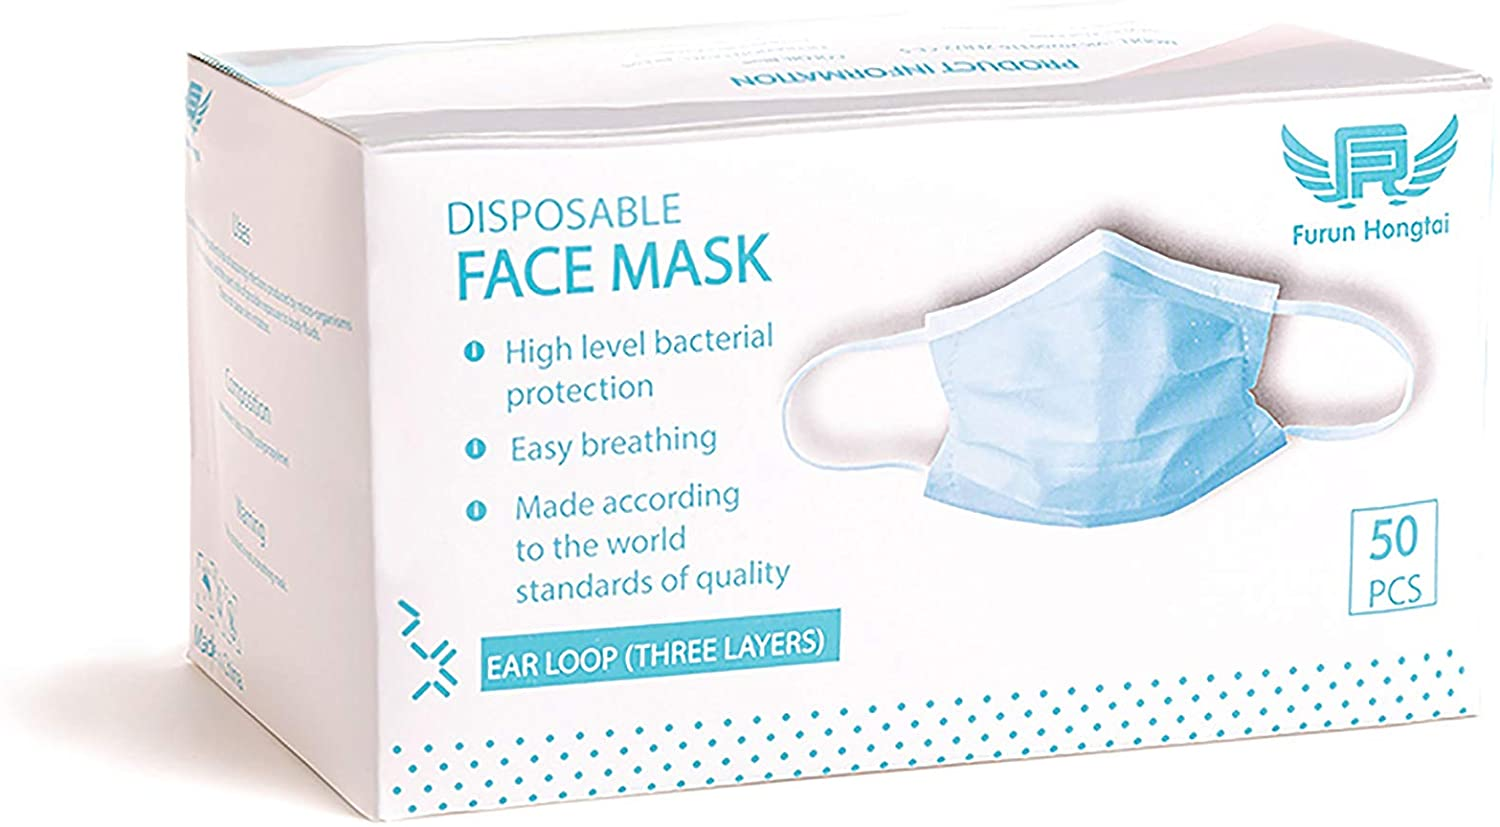 50 pc 3ply Protective Mouth Cover Face Mask Multi Layer Breathable Disposable for Individual and Family Use (Packaging May Vary)